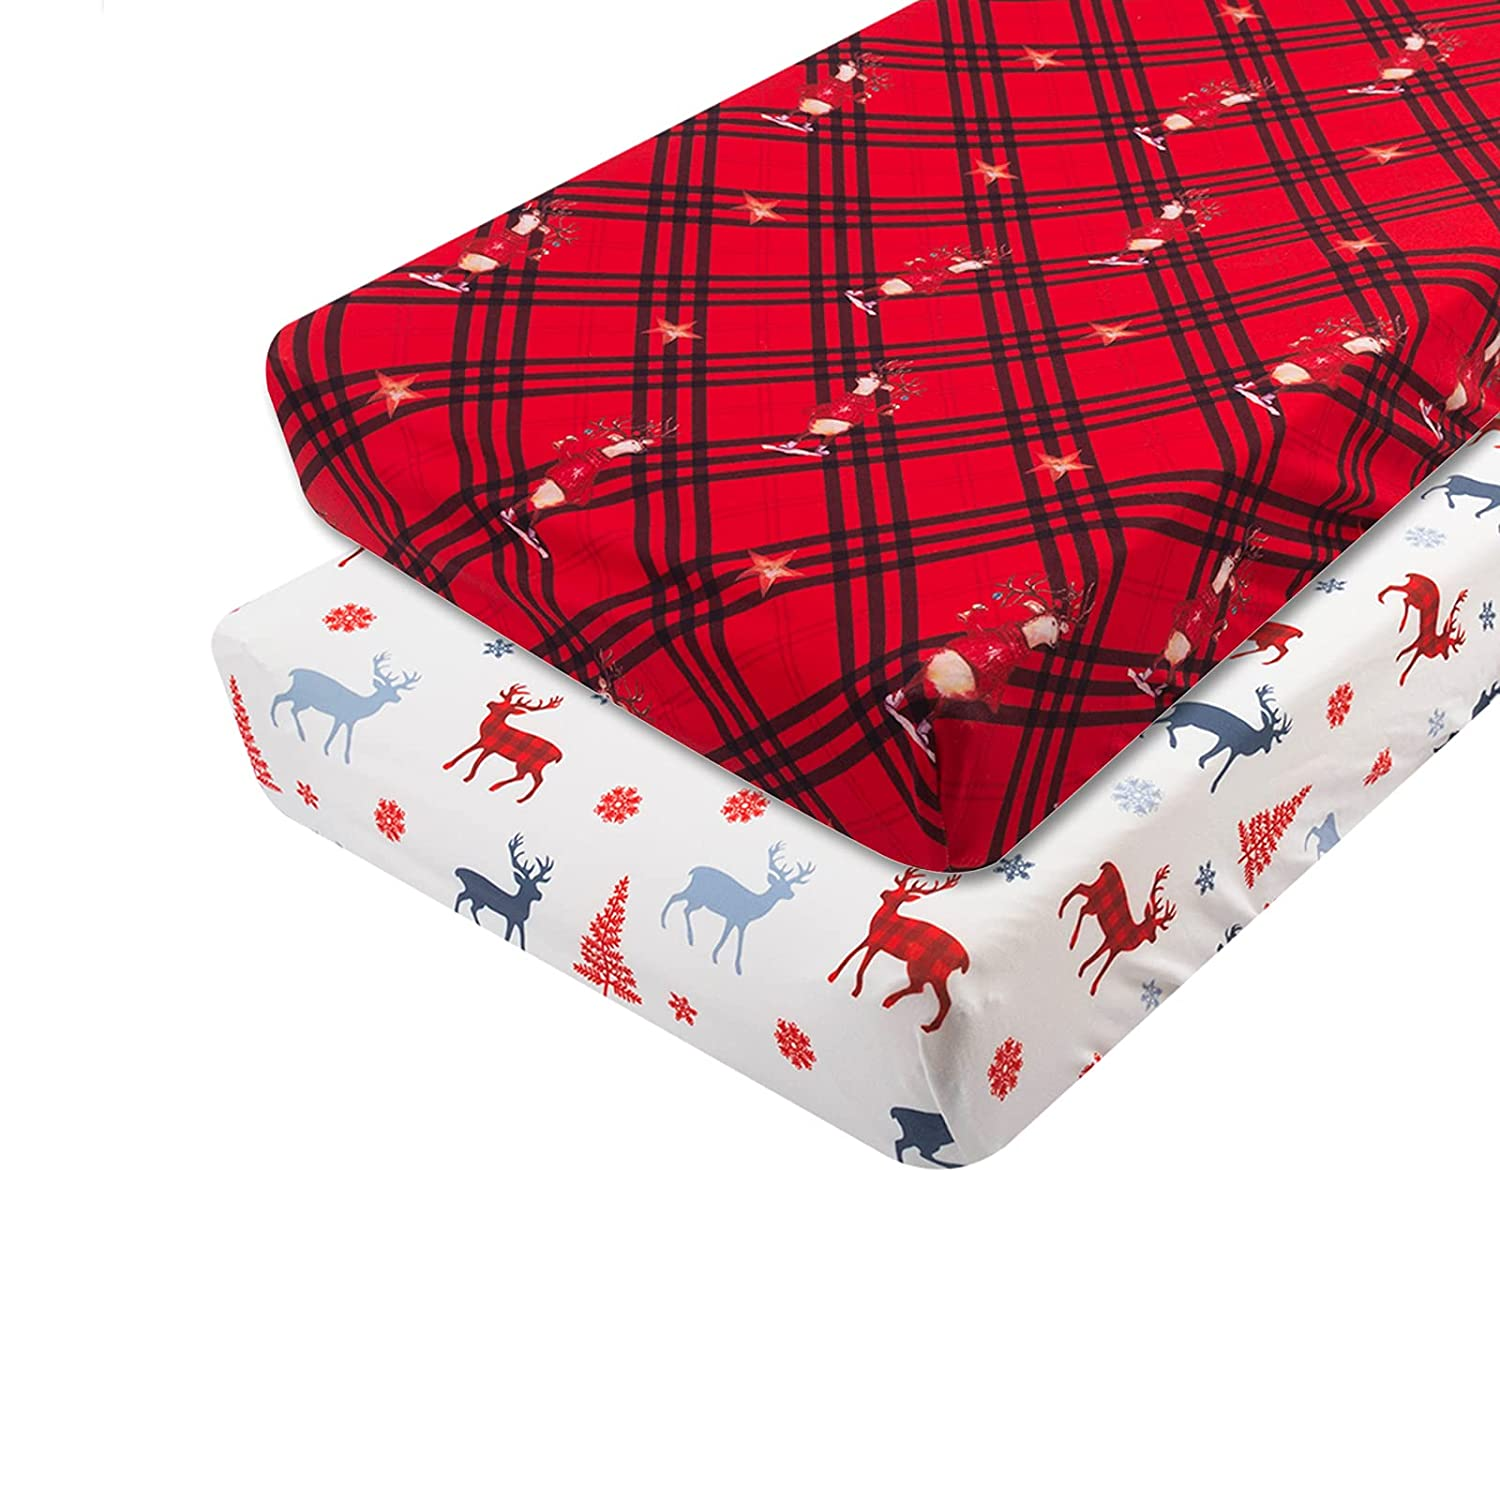 ALVABABY Christmas Stretchy Changing Pad Pack Nashville-Davidson Mall Covers half 2 Bassinet